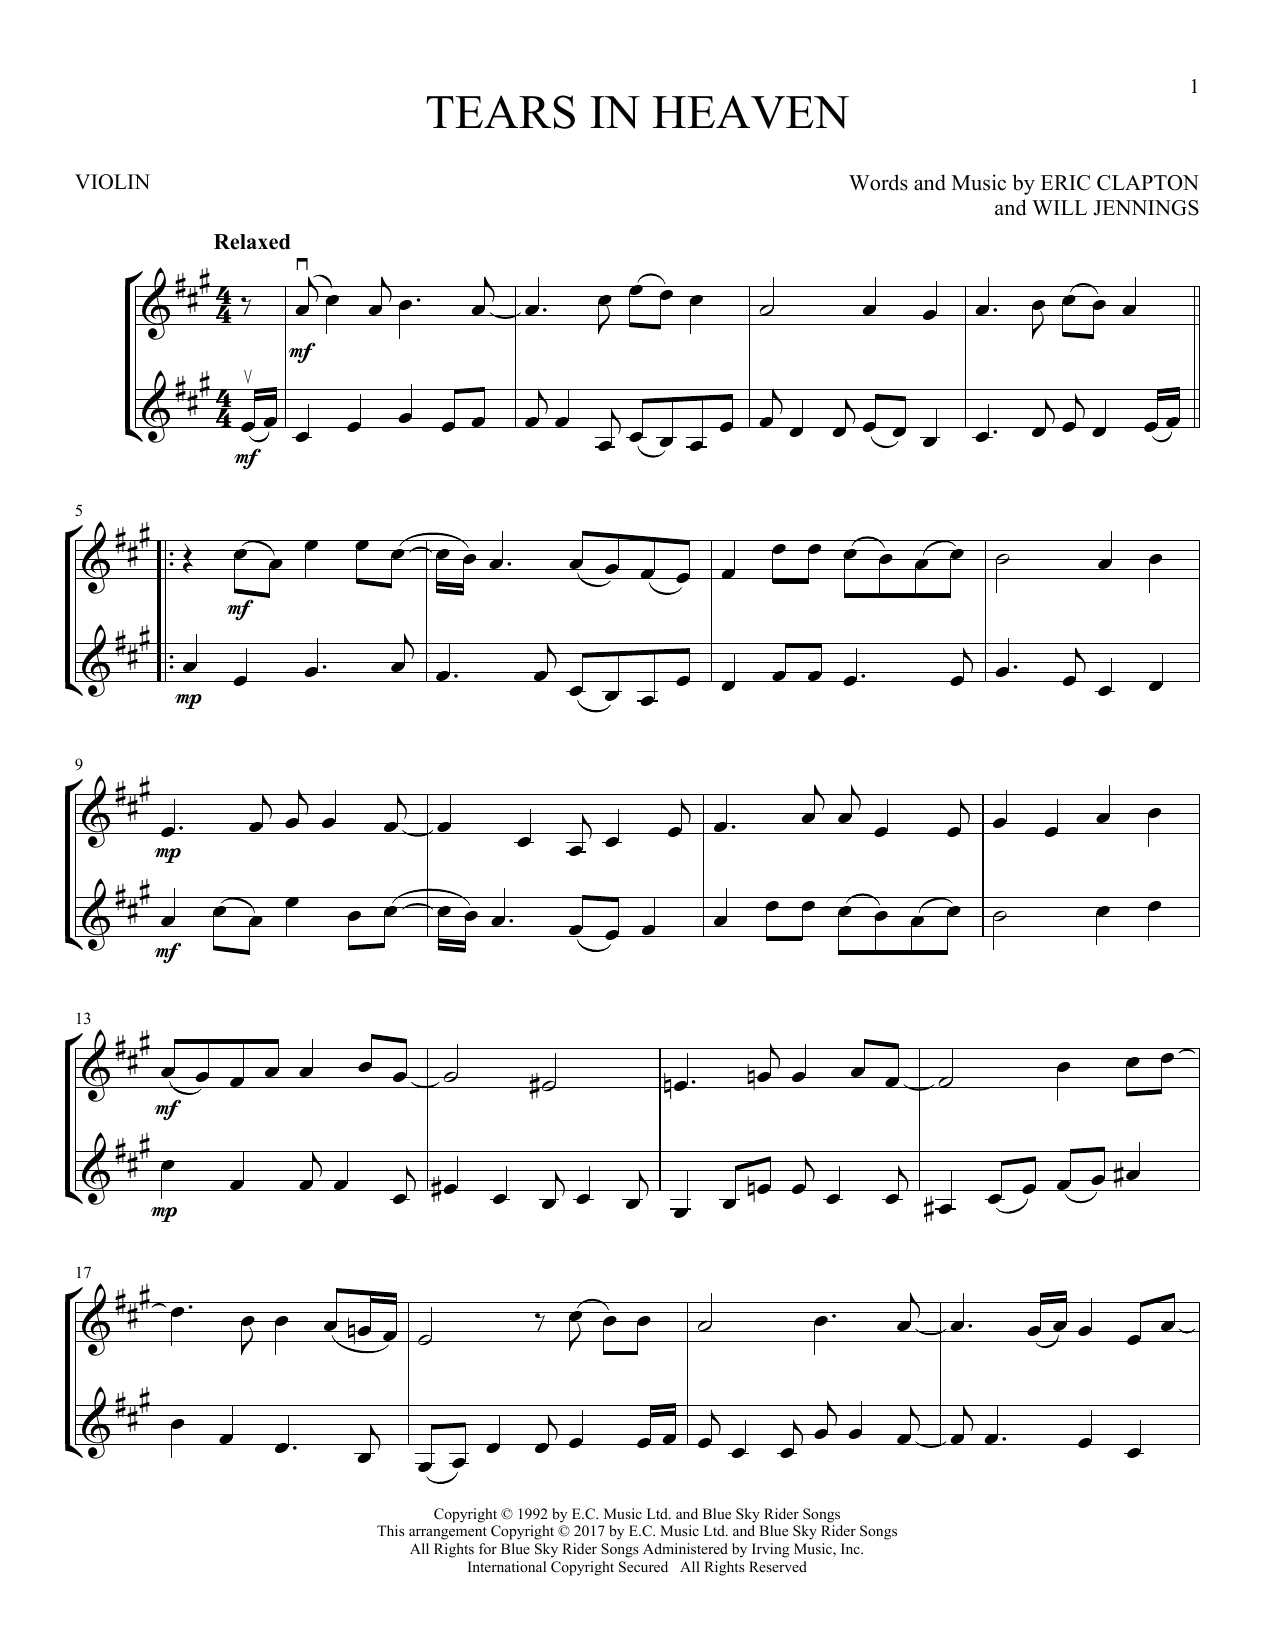 Tears In Heaven Chords Eric Clapton Tears In Heaven Sheet Music Notes Chords Download Printable Vlndt Sku 253145